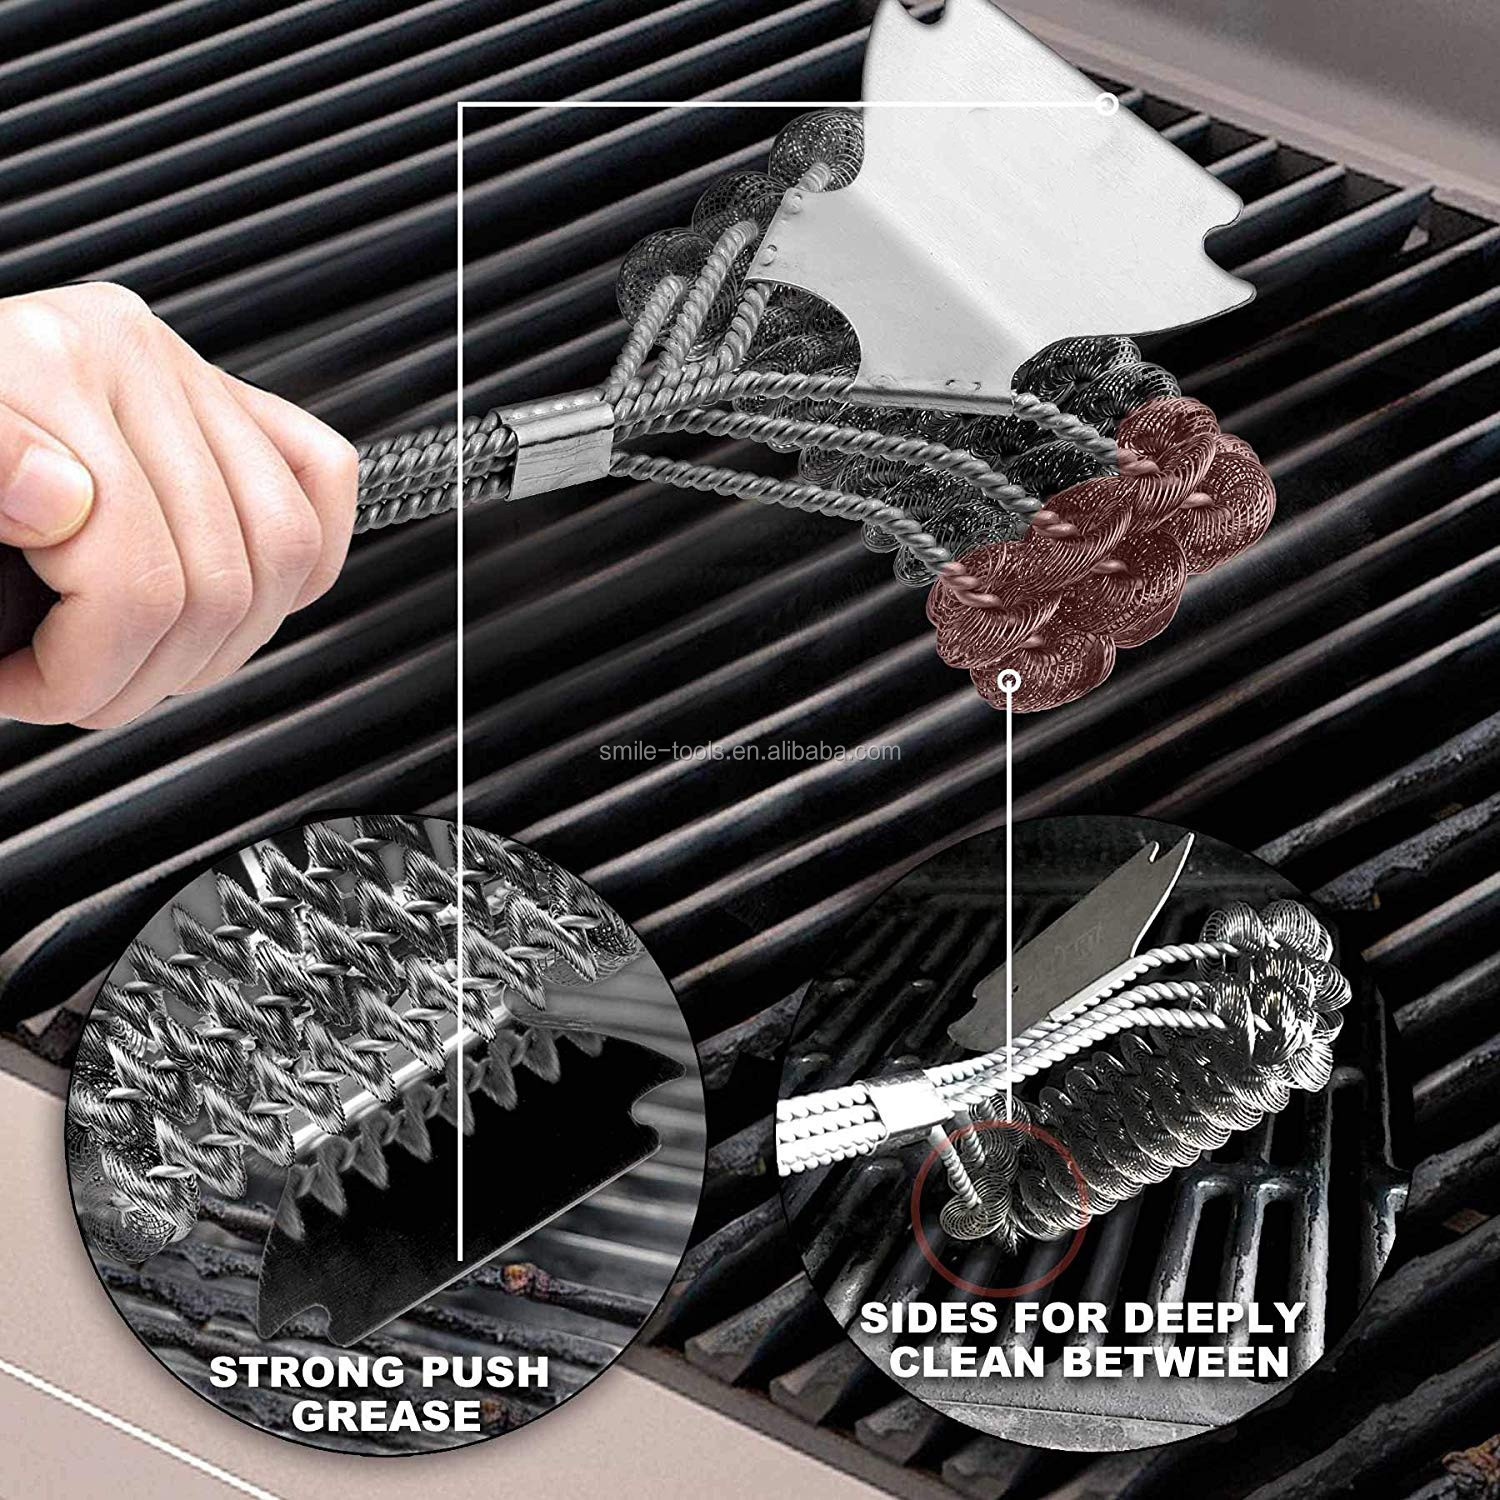 Best Safe BBQ Cleaner Grill Brush Bristle Free with Extra Wide Scraper